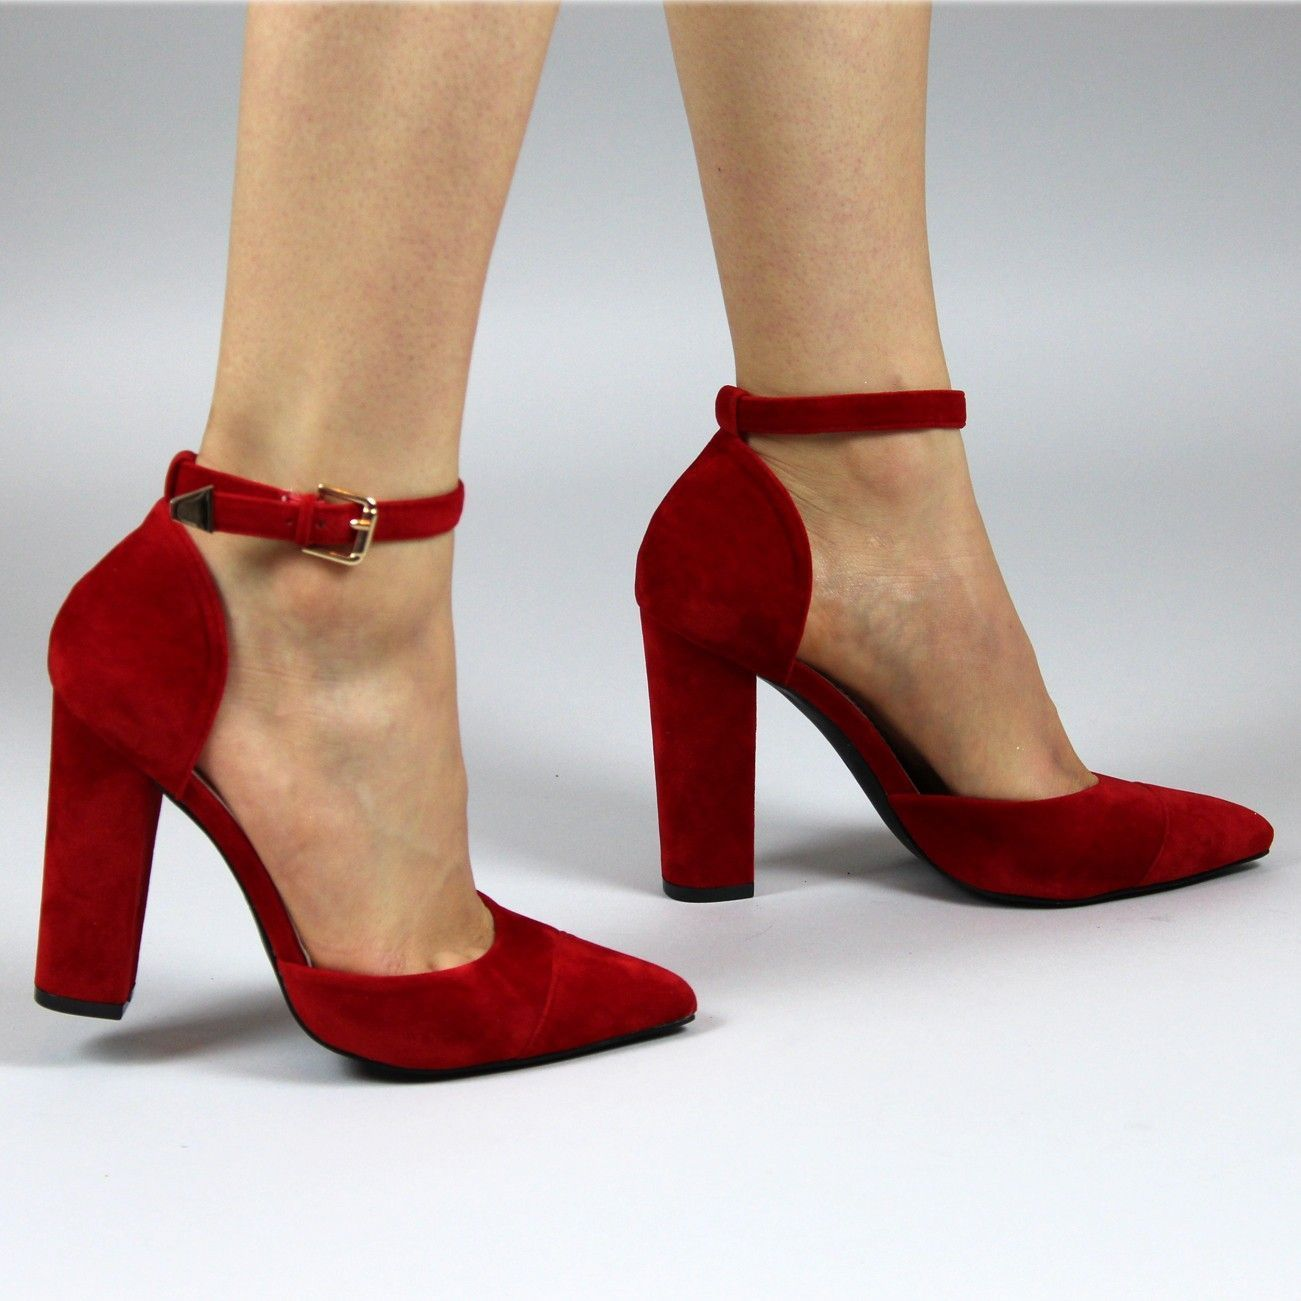 8aaff813812 Sofia Red Suede Block Heel Ankle Strap Pointed Court Shoes ...